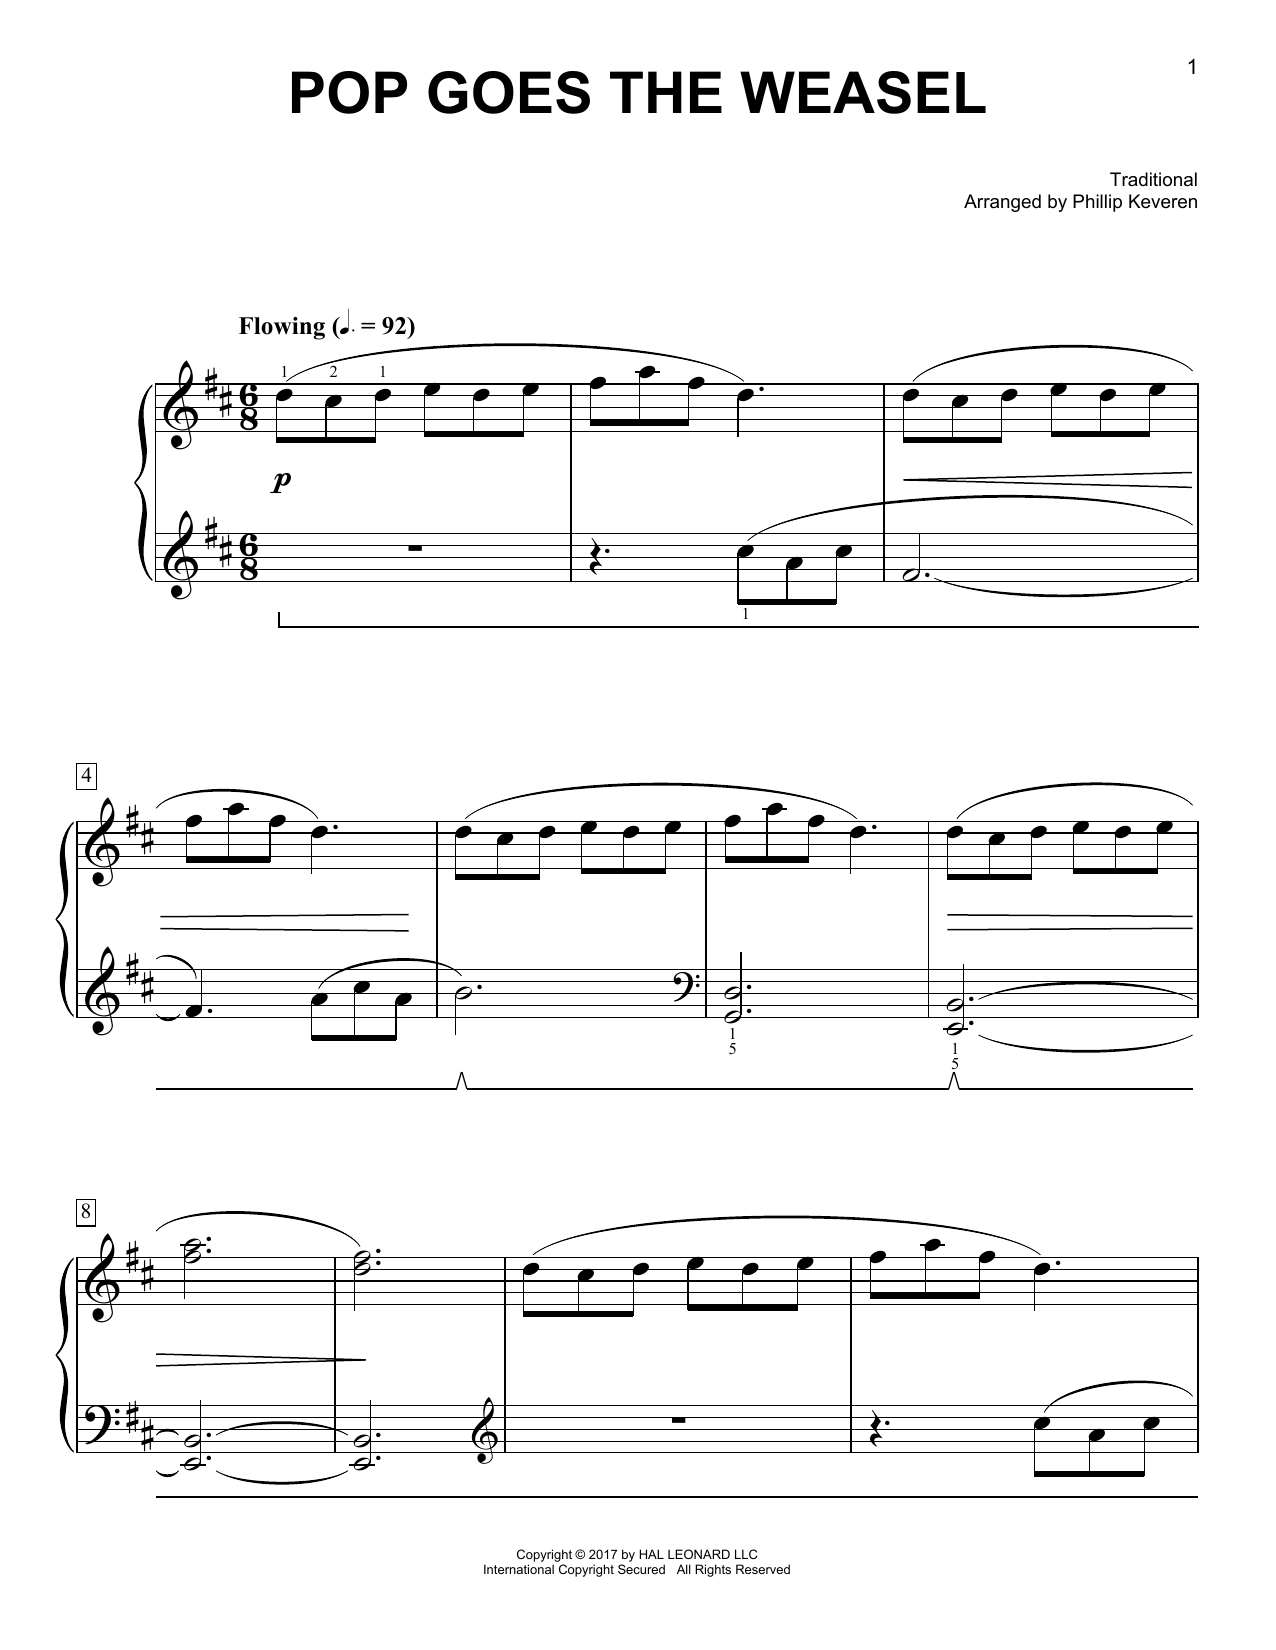 Traditional Pop Goes The Weasel [Classical version] (arr. Phillip Keveren) sheet music notes and chords. Download Printable PDF.